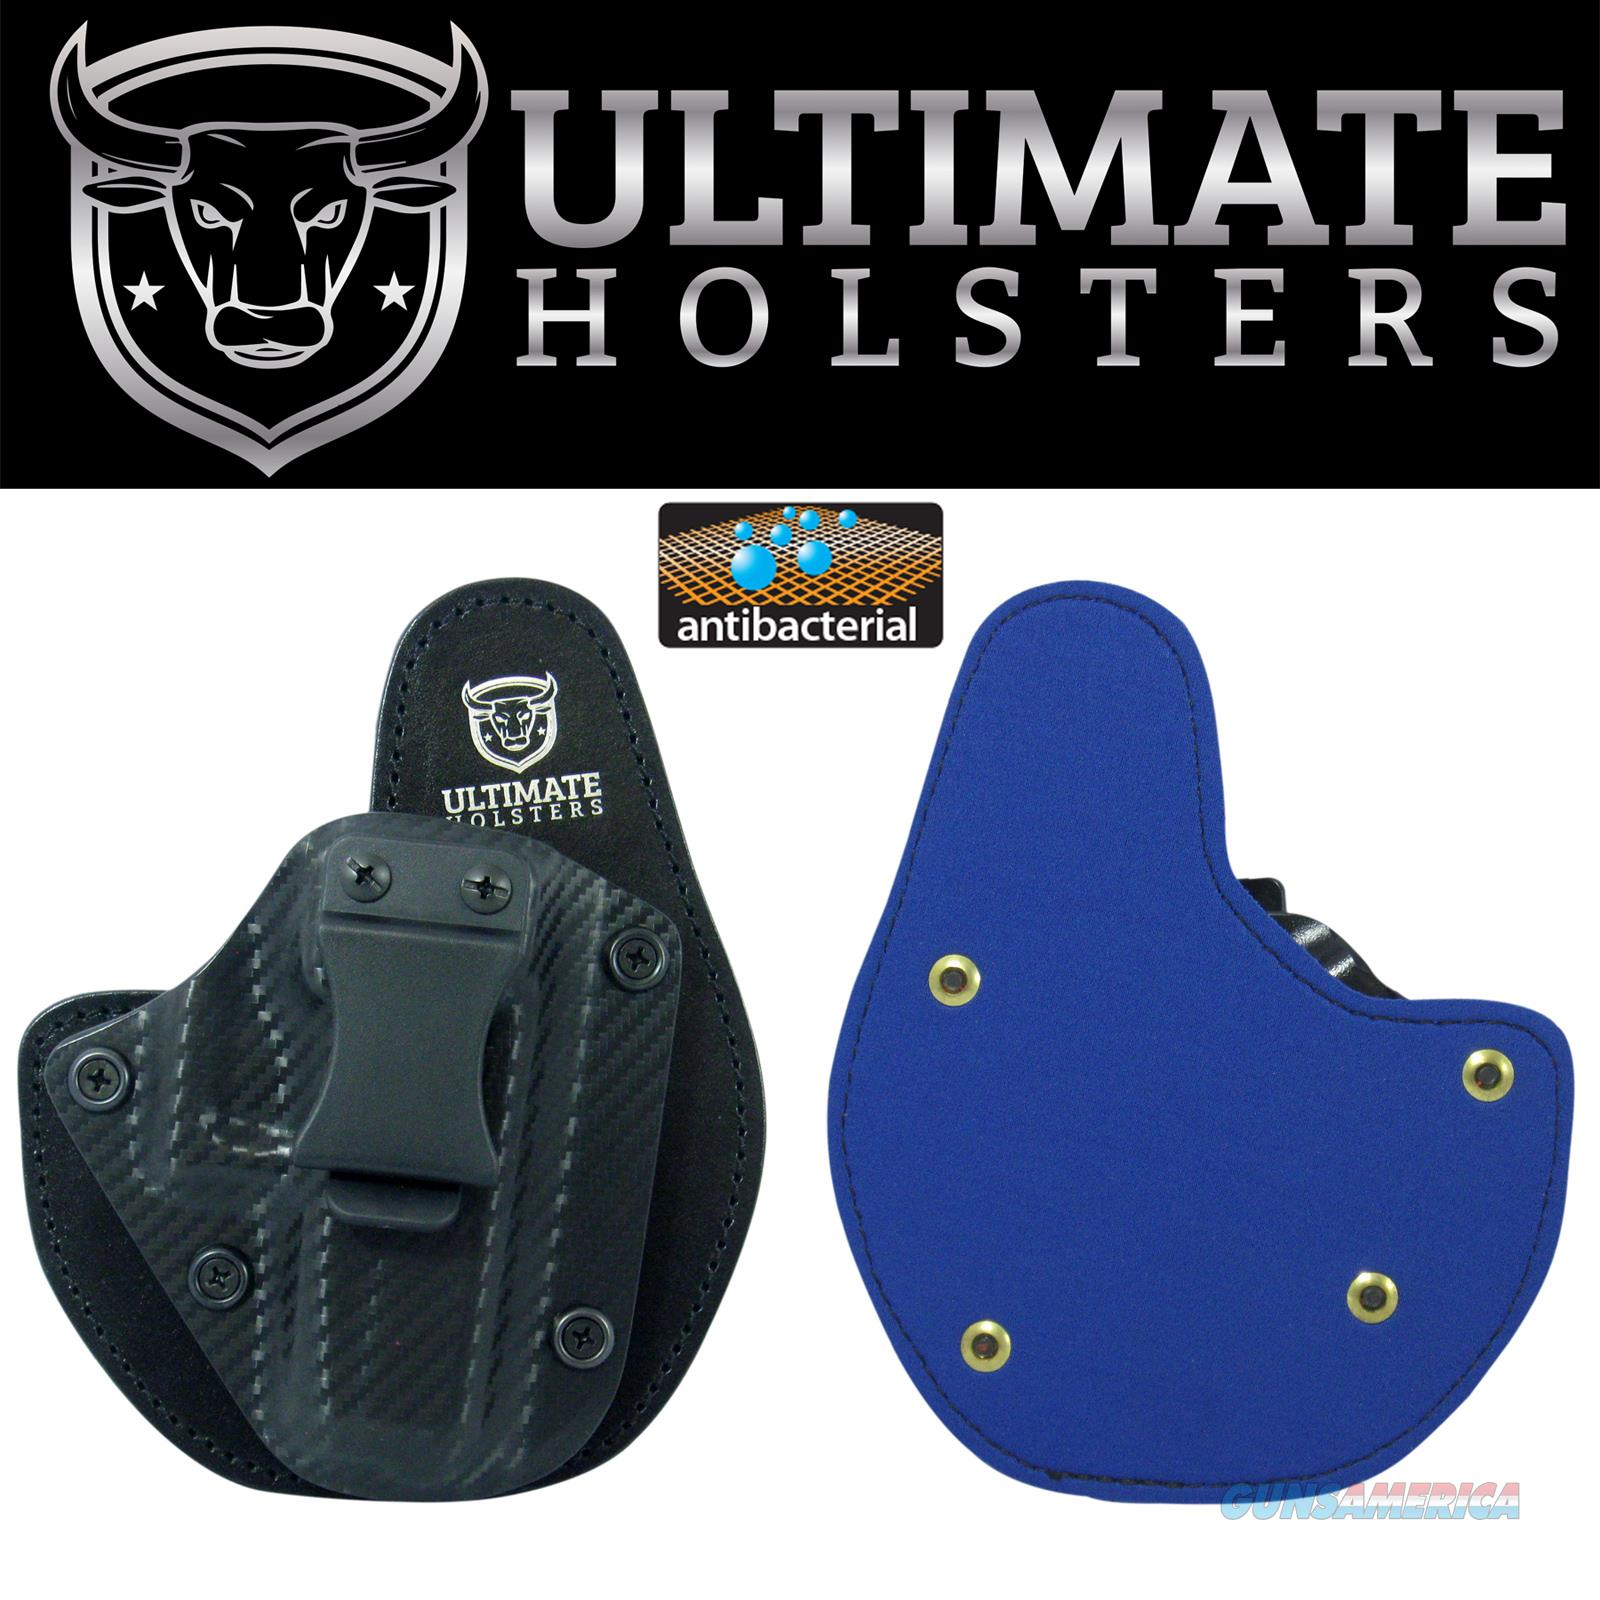 Sig Sauer P238 Cloud Tuck Rapid Hybrid Holster- Most Comfortable Holster- Antimicrobial Padding   Non-Guns > Holsters and Gunleather > Concealed Carry